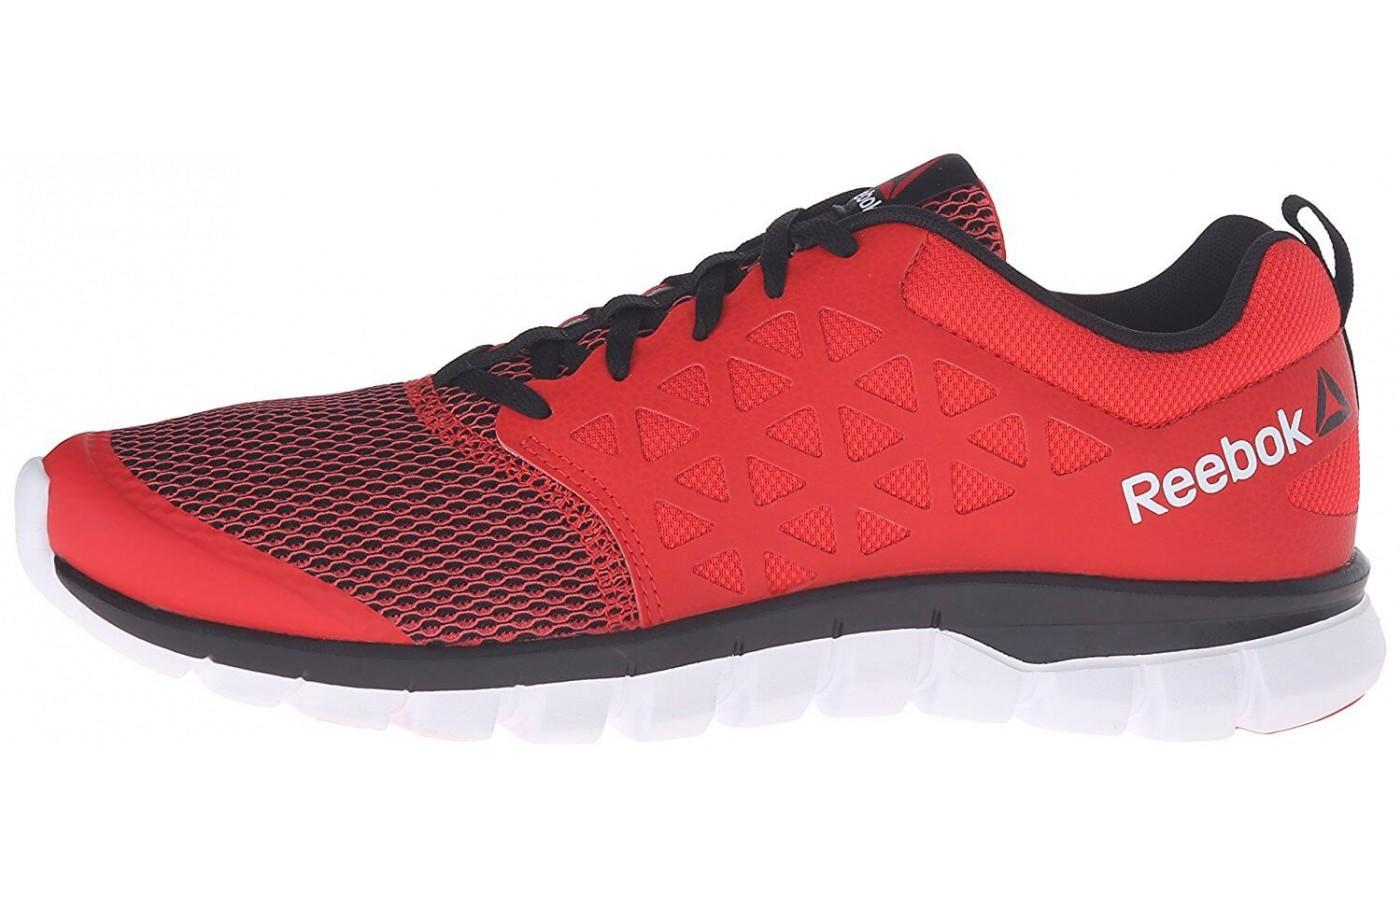 the Reebok Sublite XT Cushion 2.0 is a low-cut running shoe